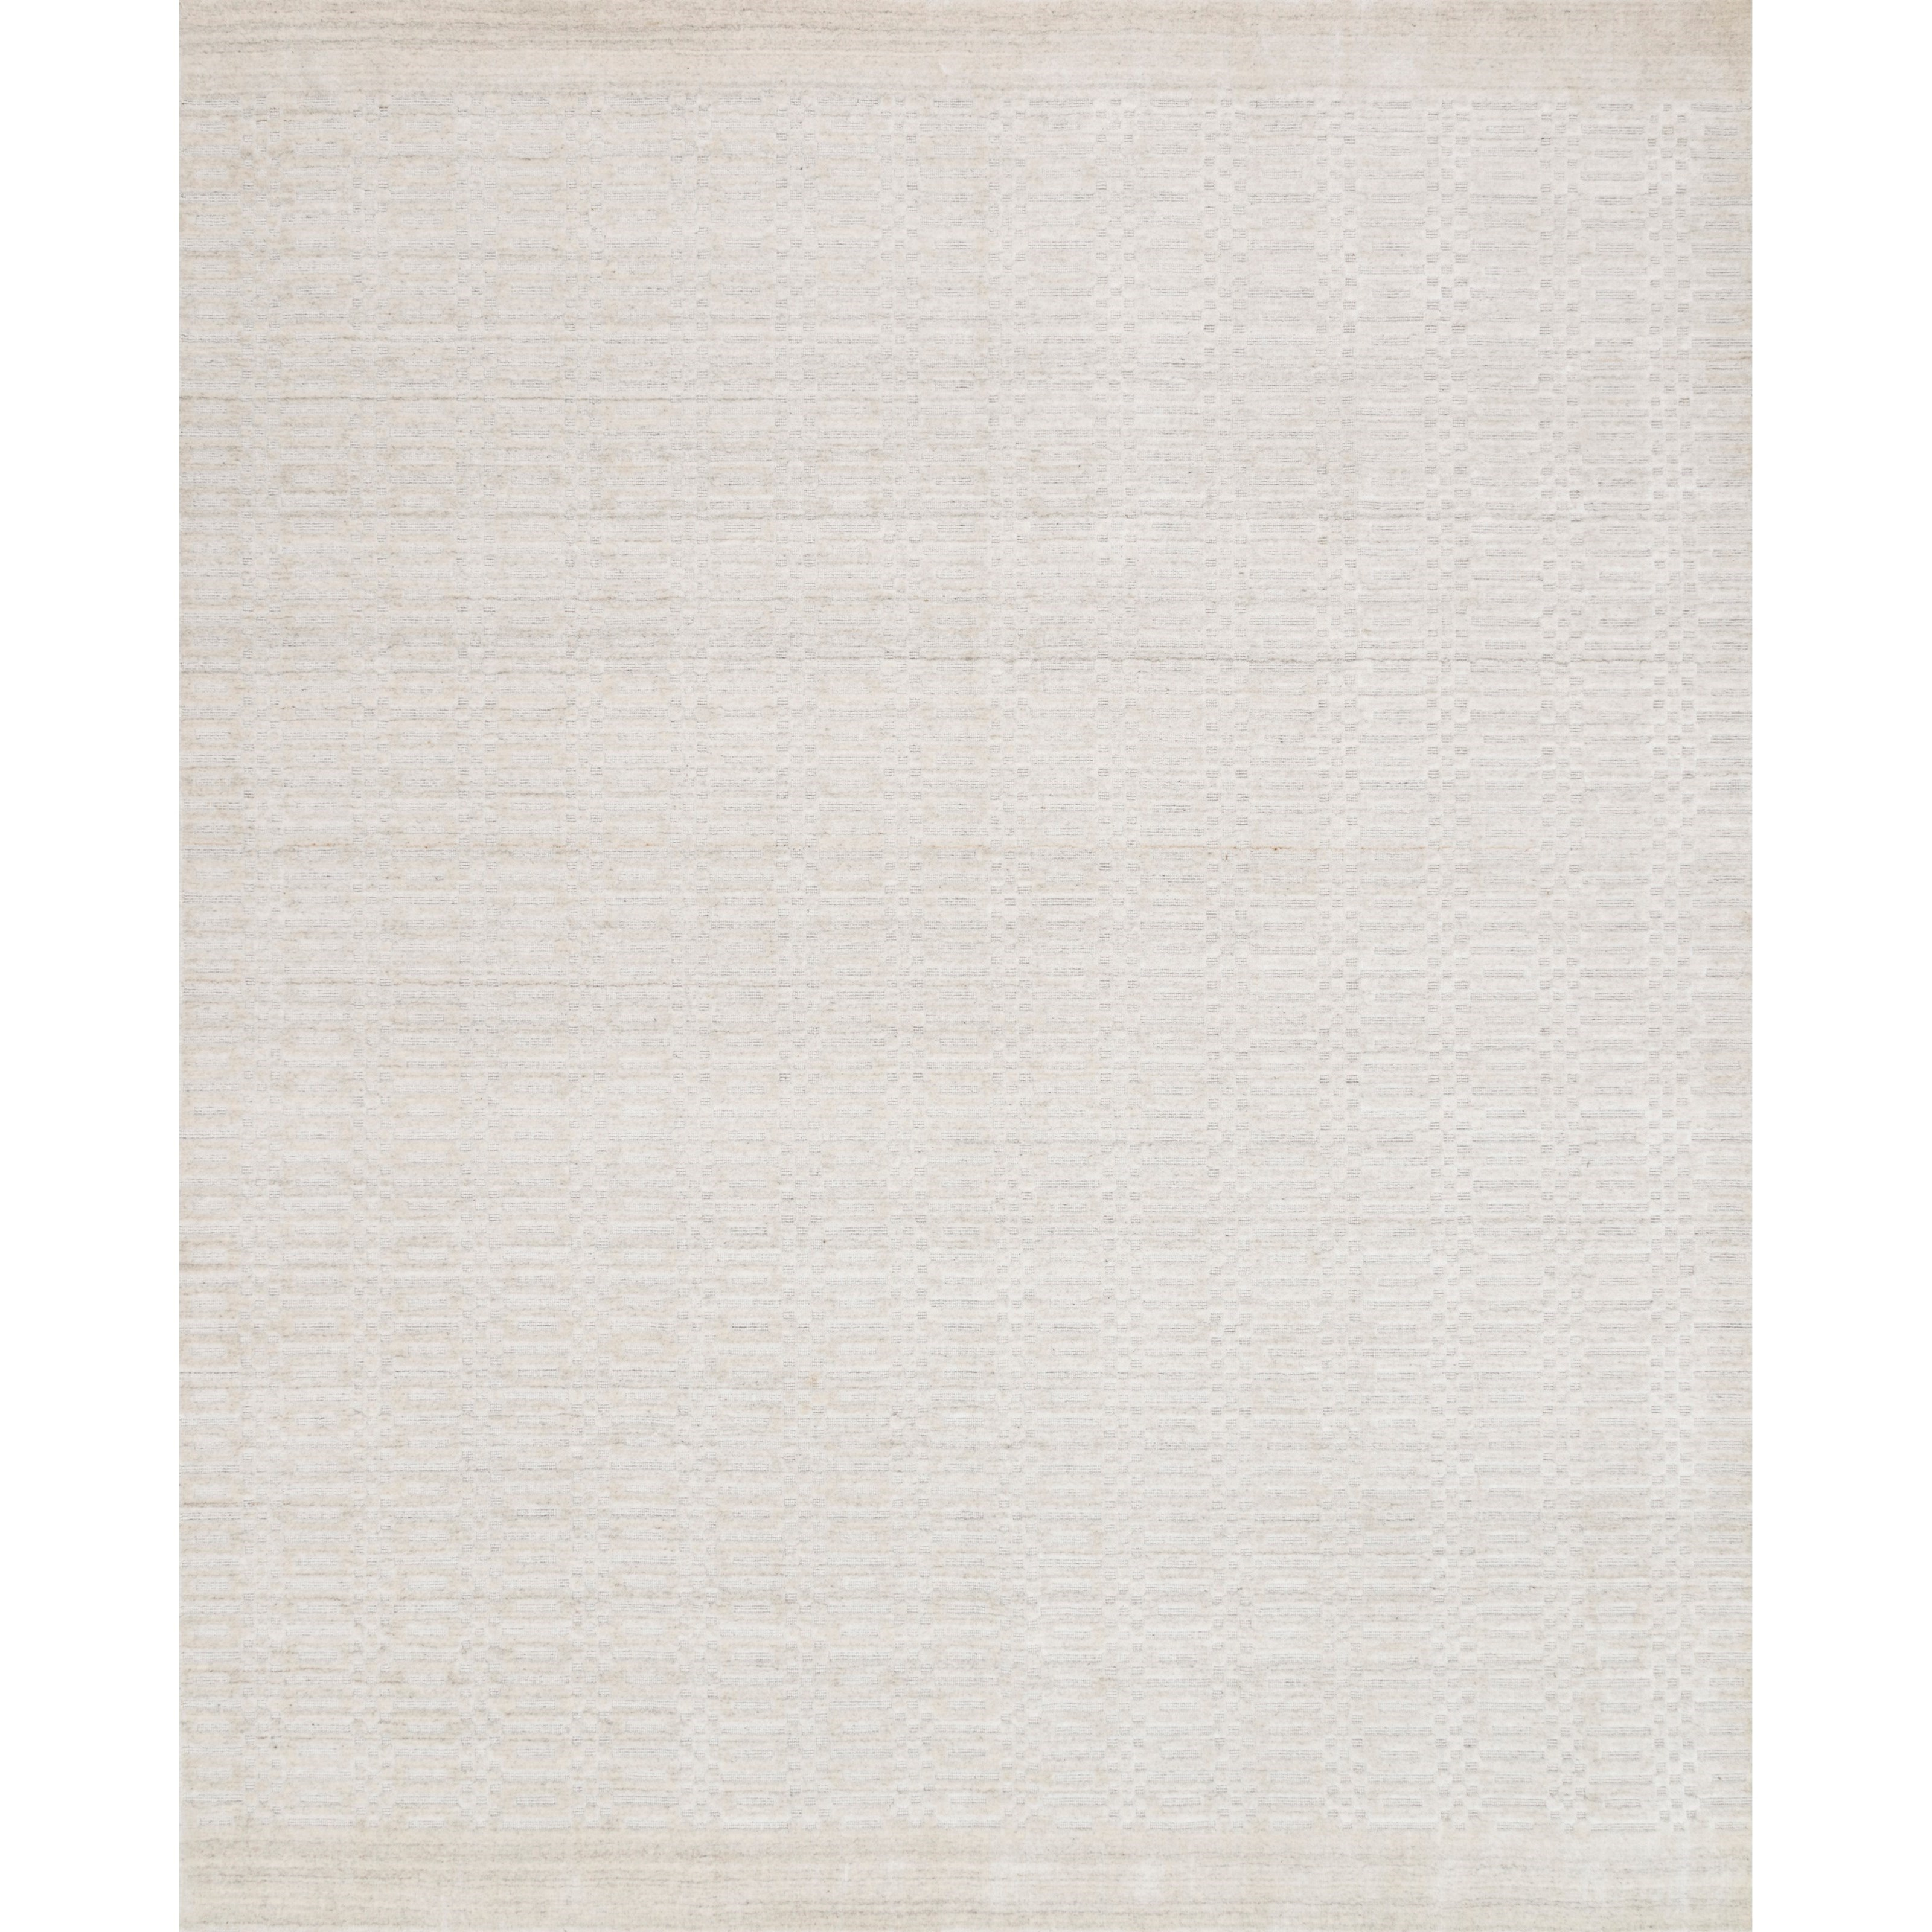 """Lennon 2'0"""" x 3'0"""" Ivory Rug by Loloi Rugs at Virginia Furniture Market"""